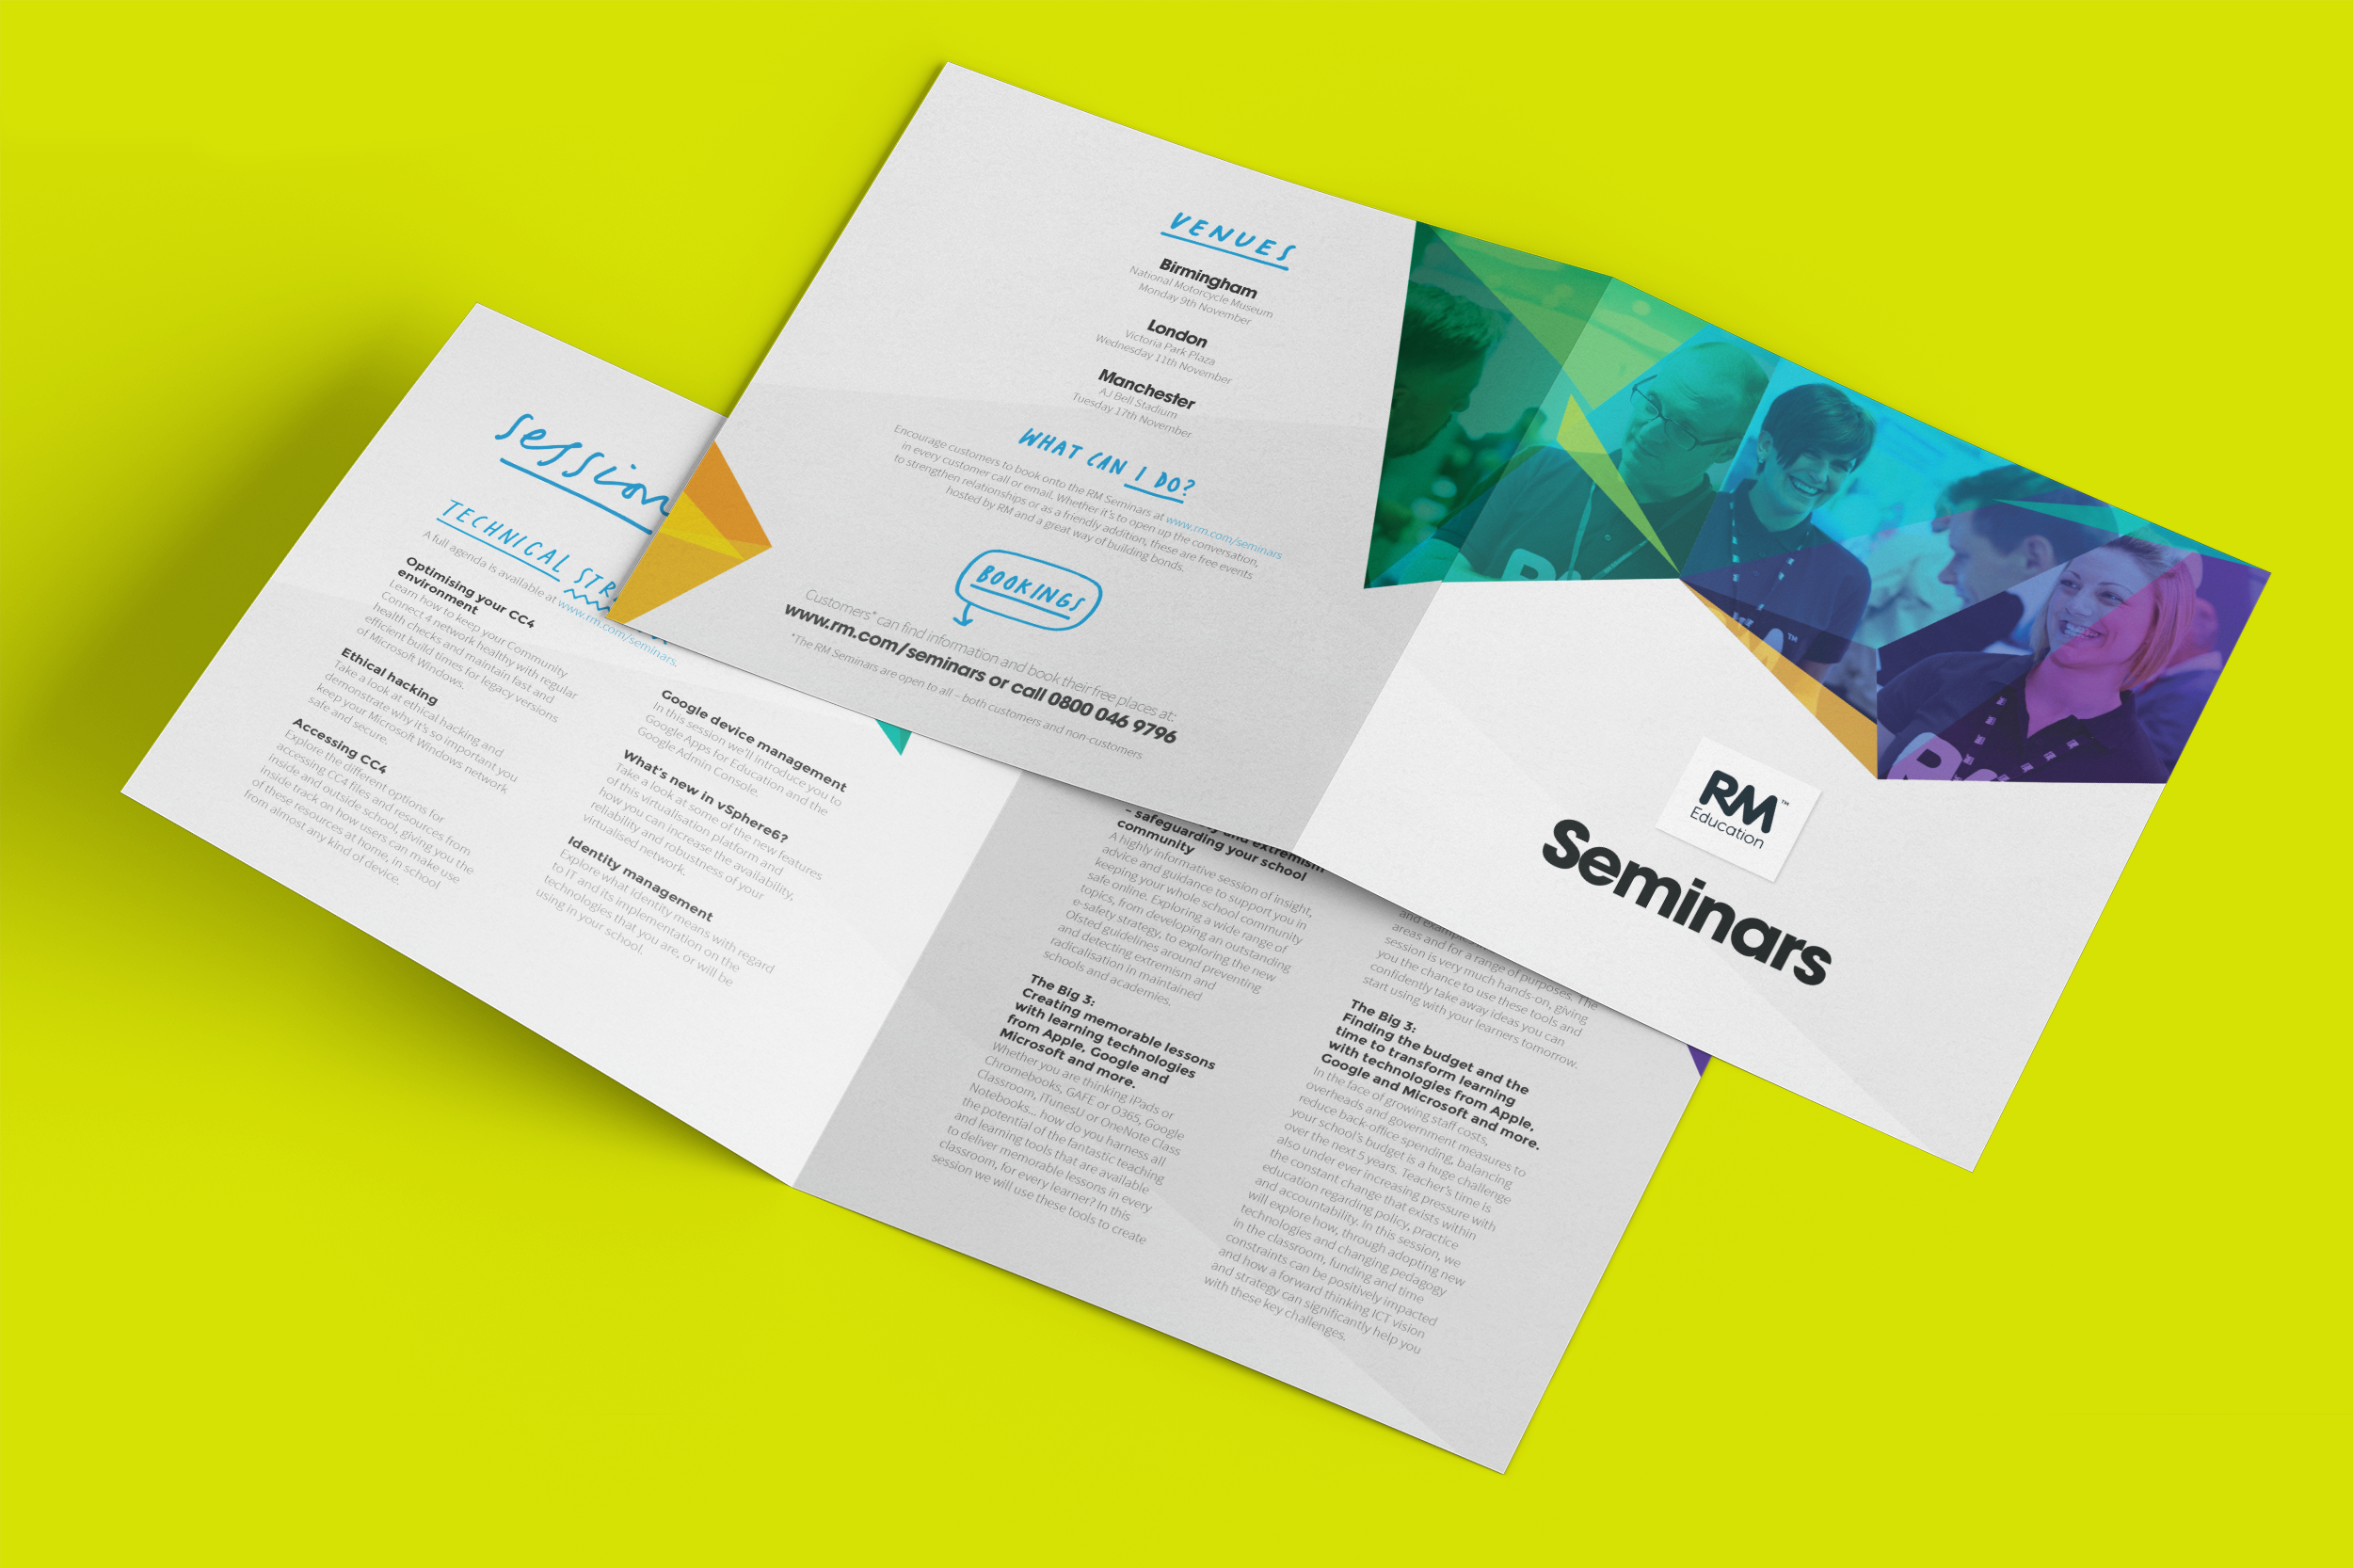 Unfolded square four page information leaflet with RM Seminars on front and colourful graphic with collage of people